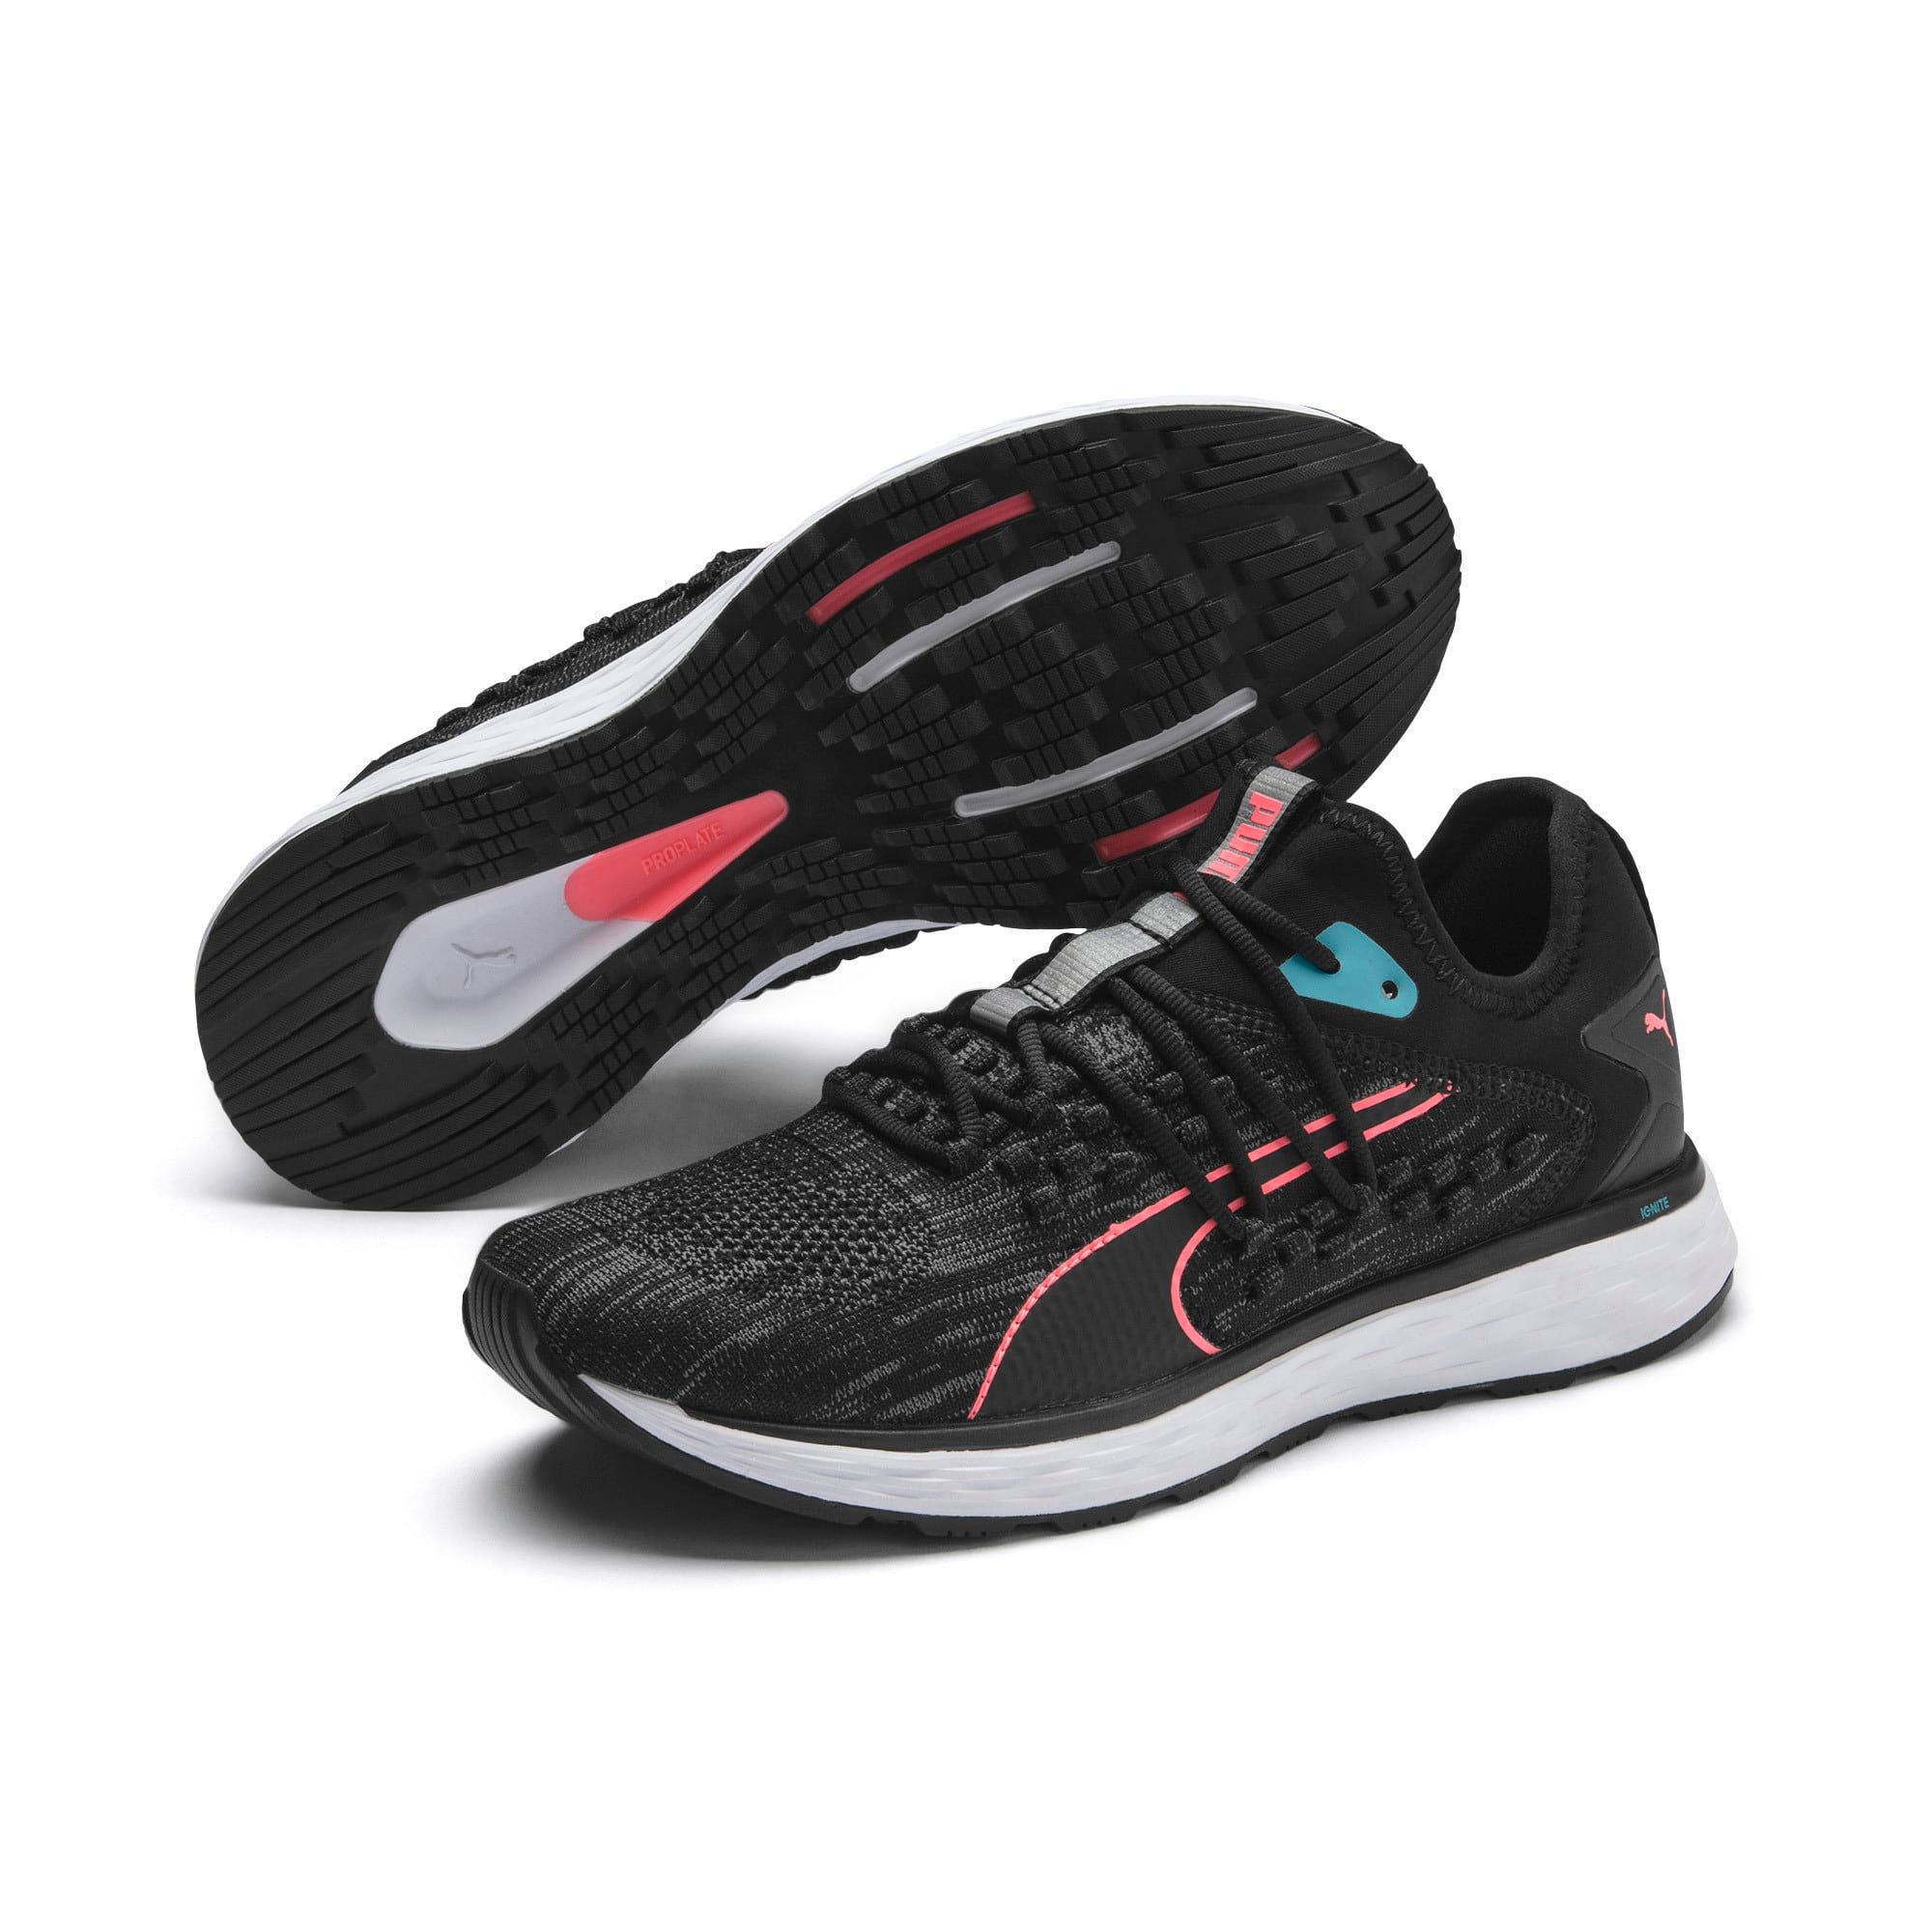 SPEED FUSEFIT Women's Running Shoes, Puma Black-Milky Blue, large